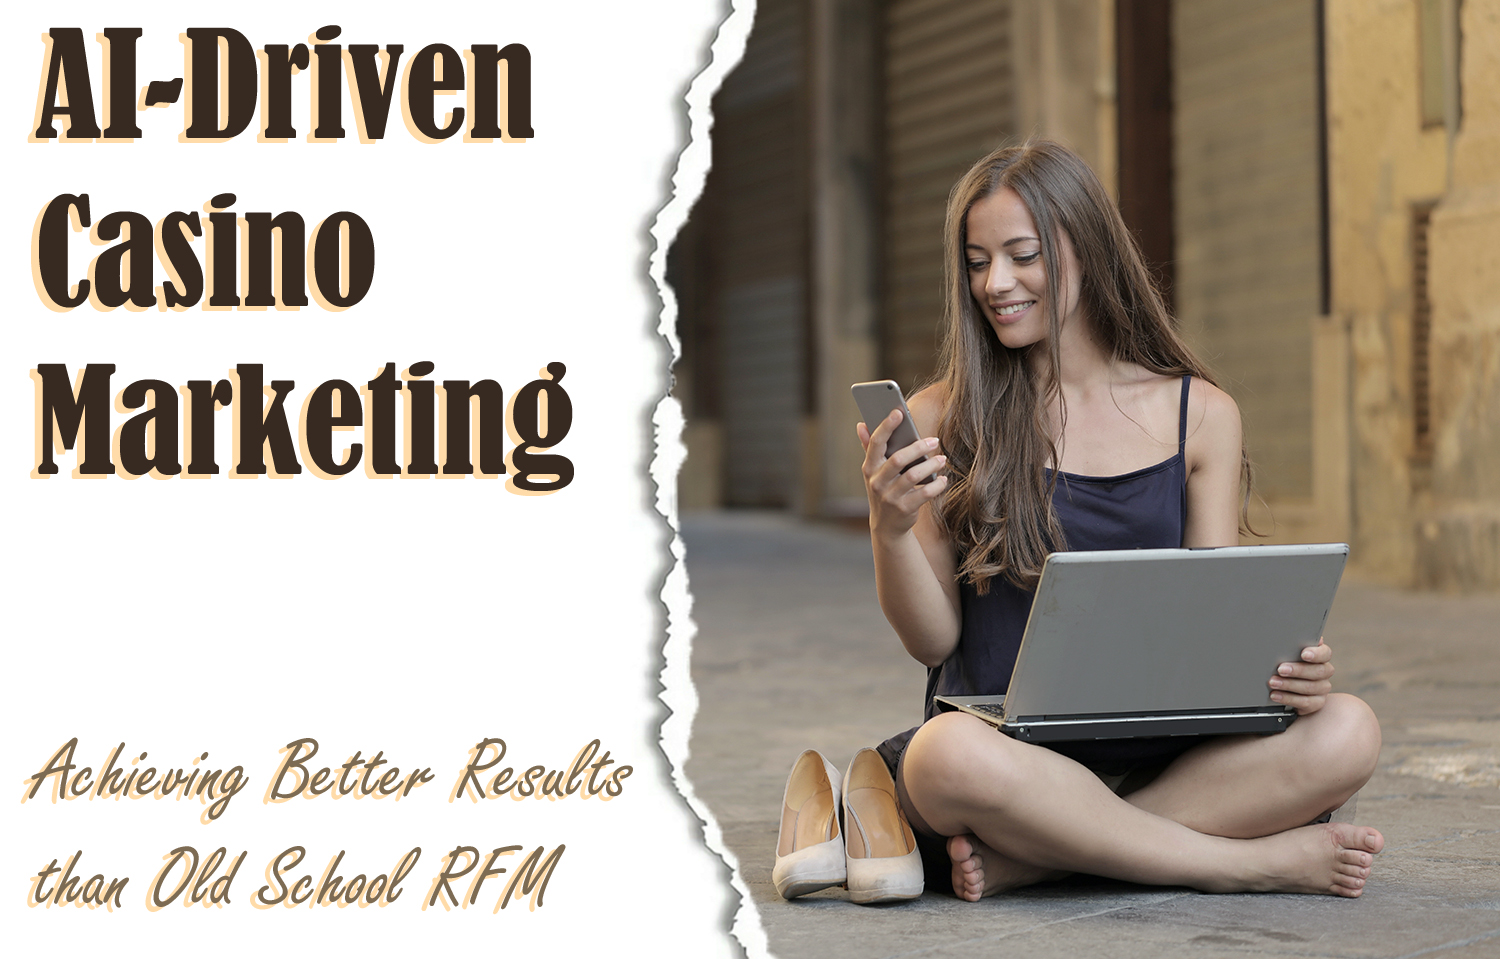 AI-Driven Casino Marketing Achieving Better Results than Old School RFM